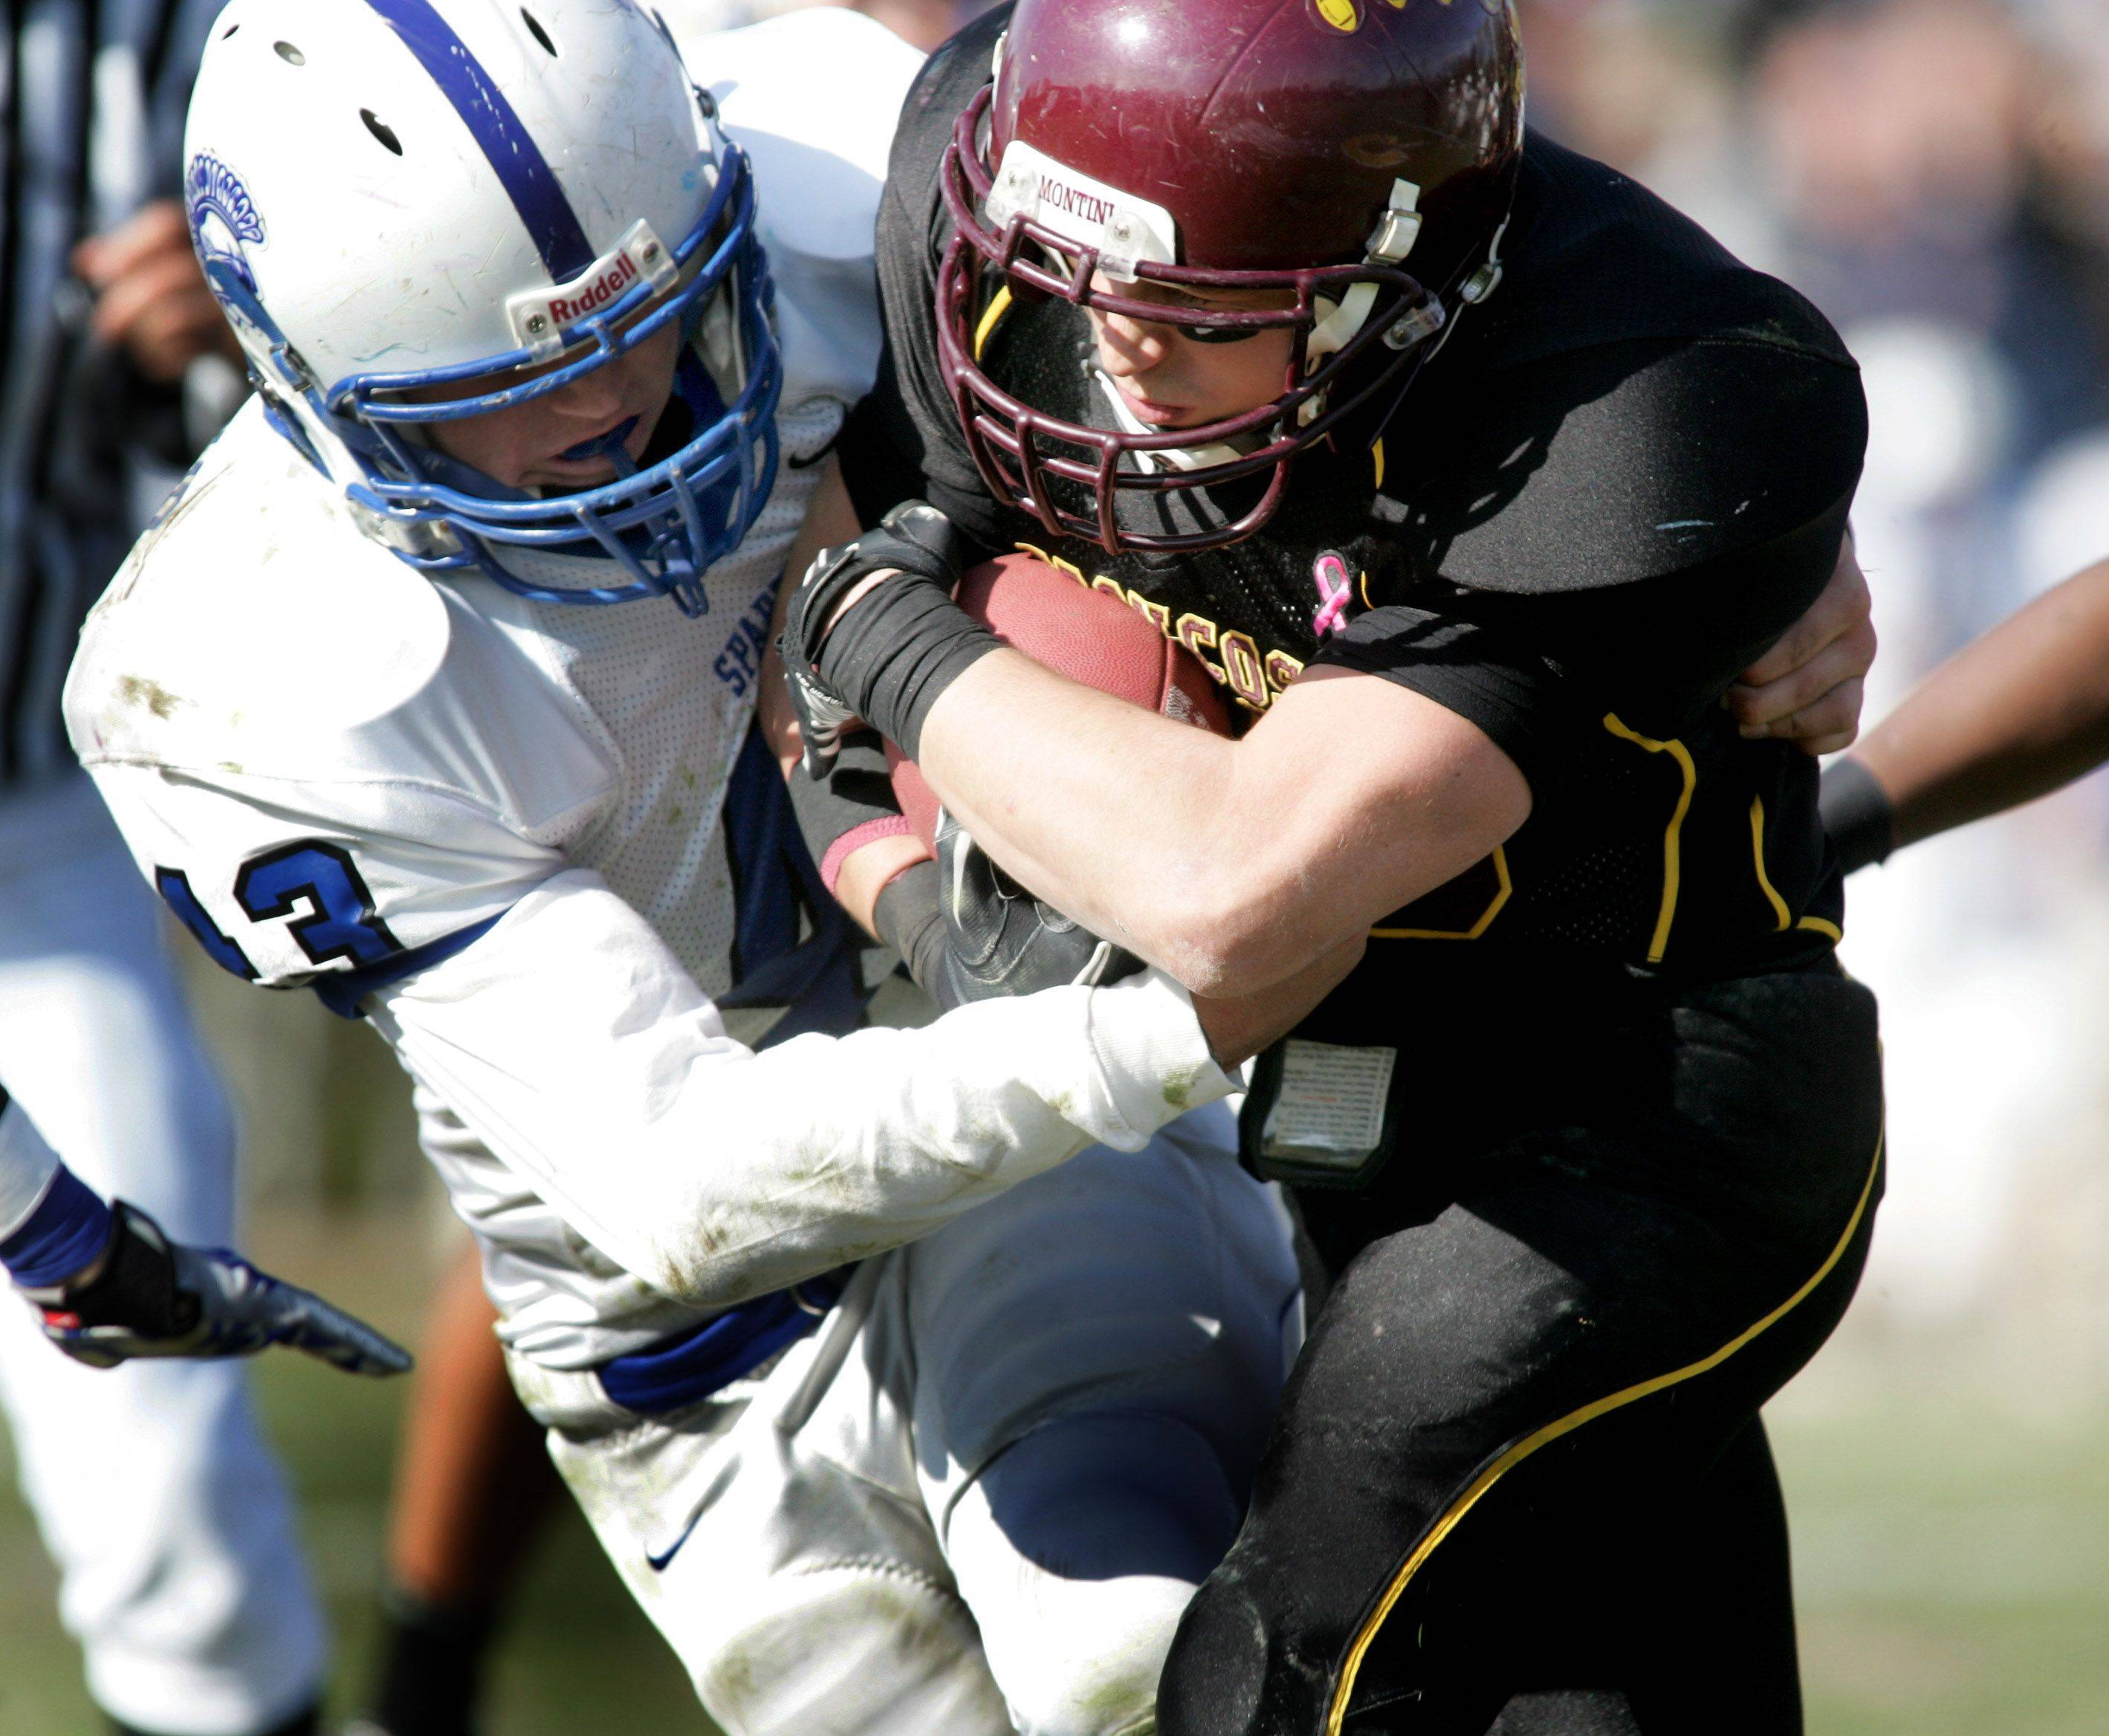 Jack Petrando of St. Francis, left, moves in to tackle Frank Baer of Montini, right.